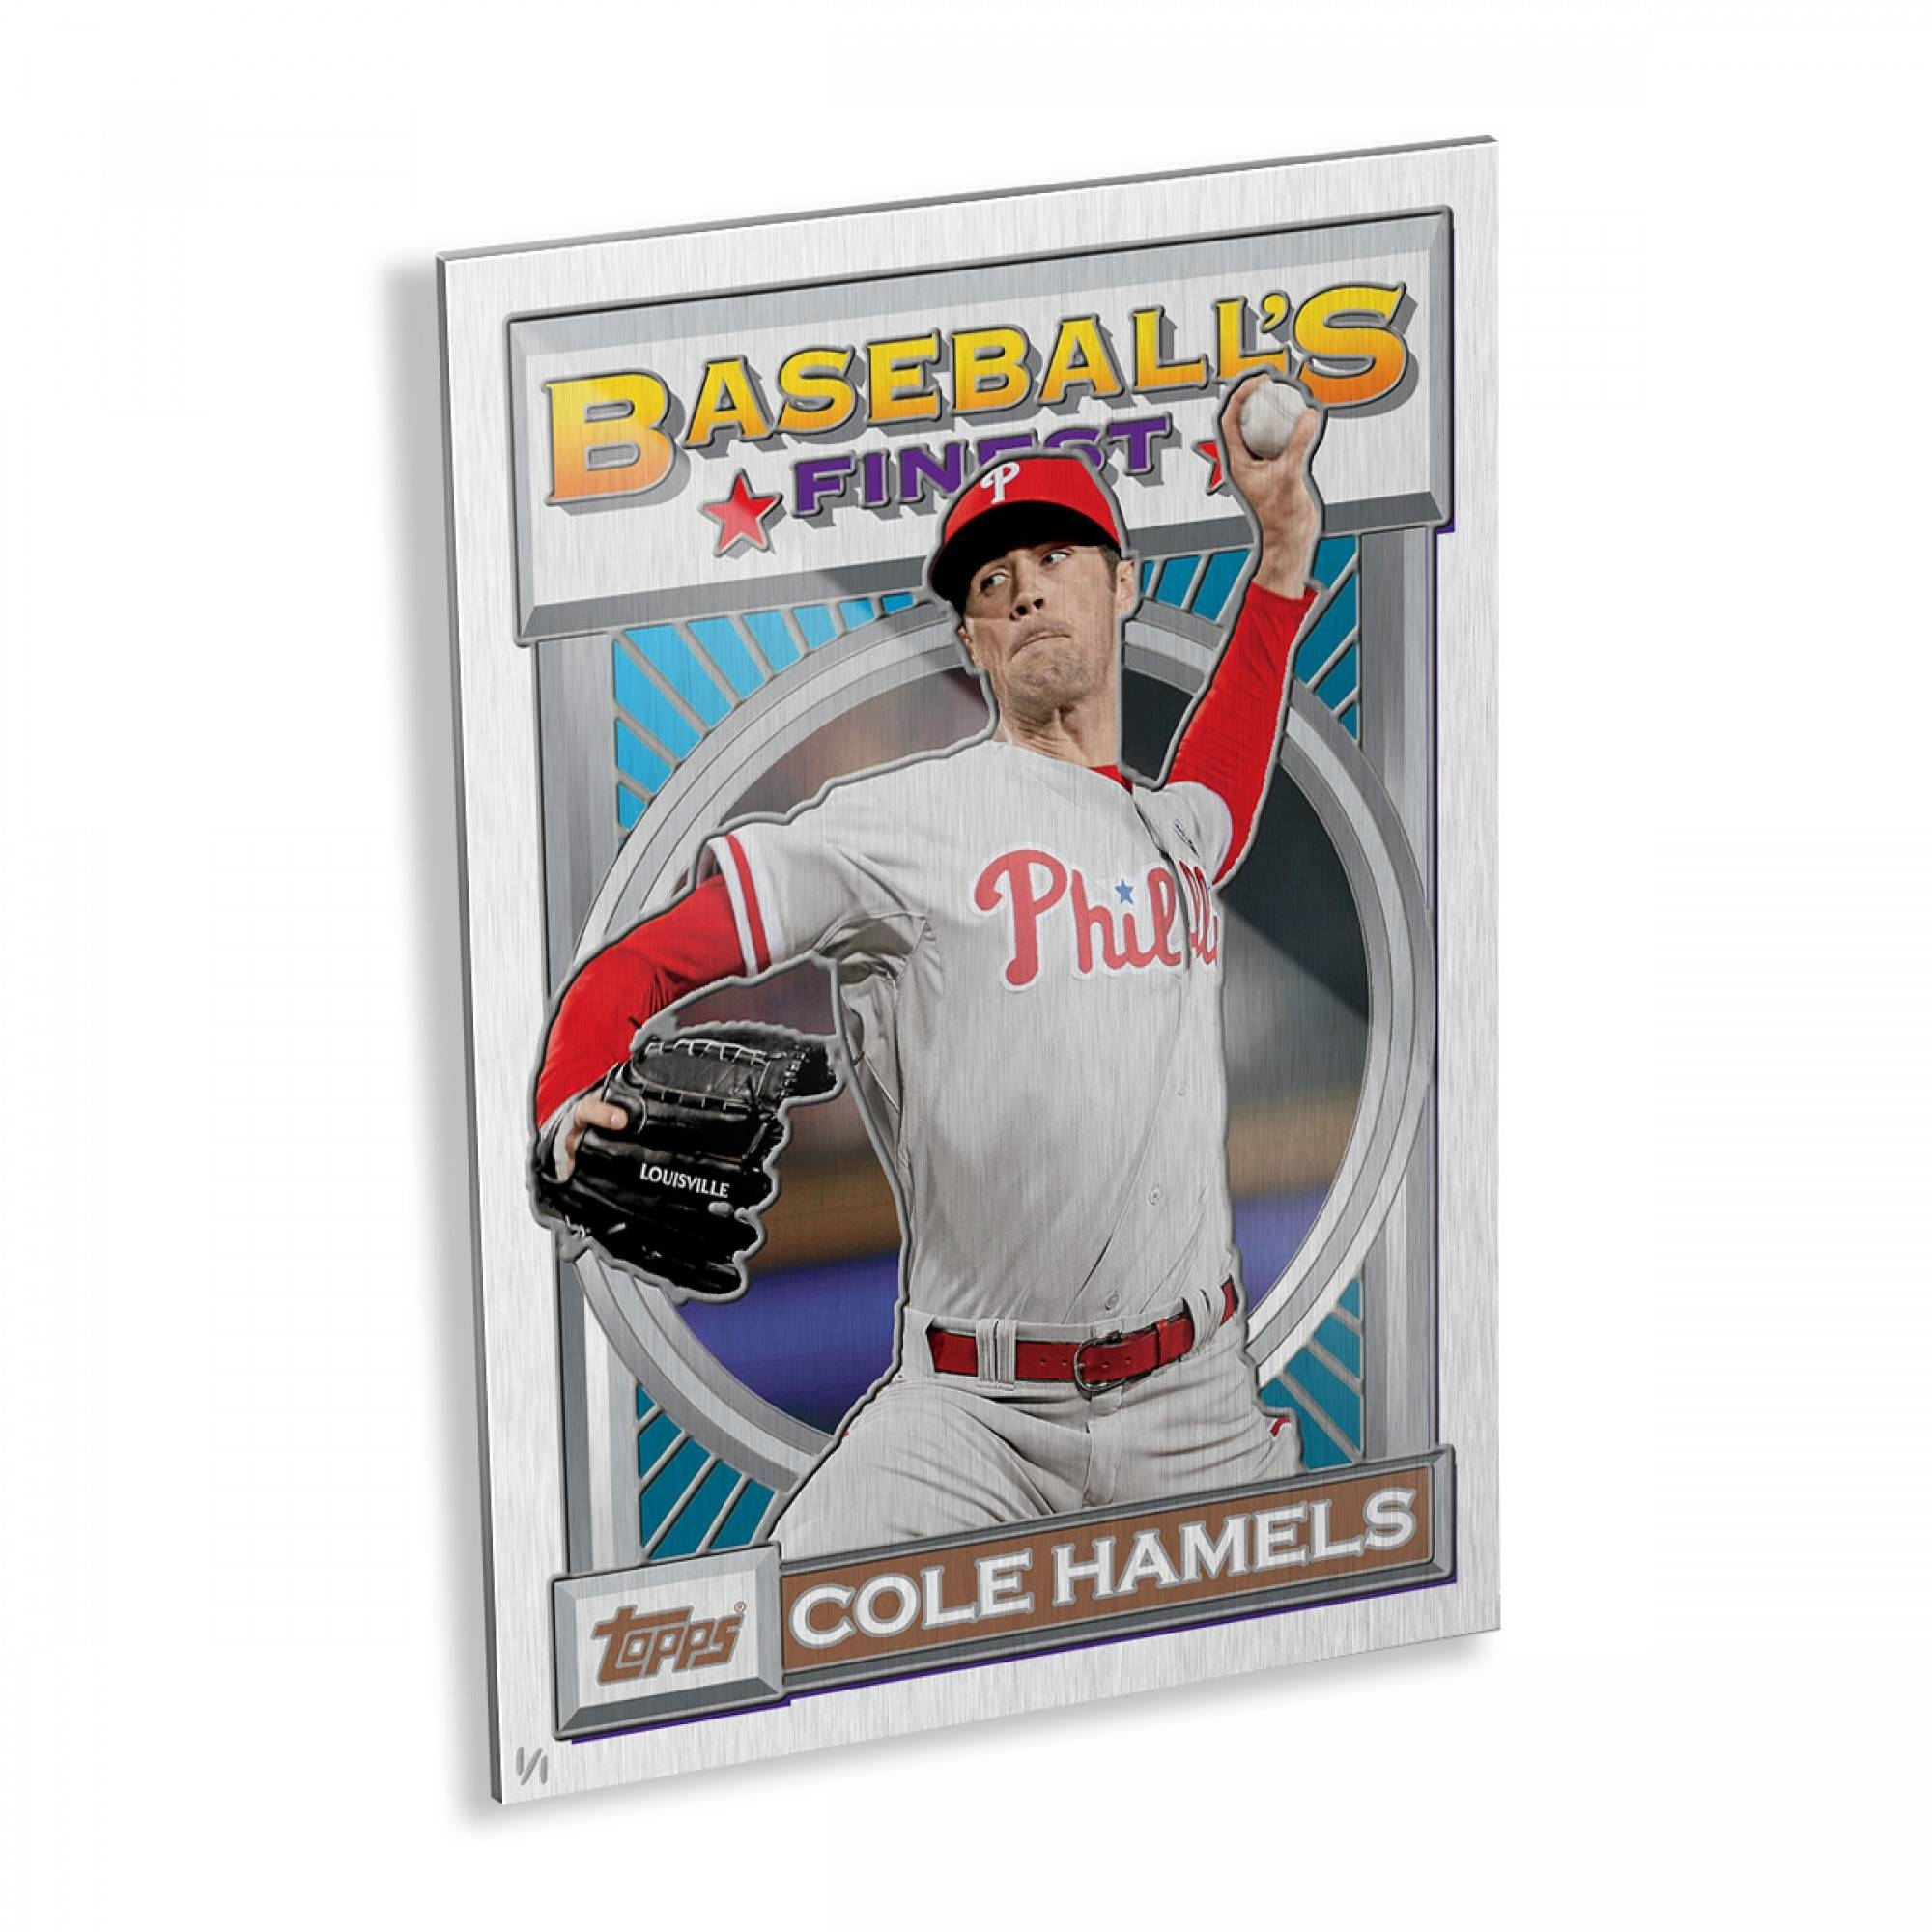 Cole Hamels 1993 Finest Metal Wall Art – # To 1 | Topps Within Best And Newest Kohl's Metal Wall Art (View 9 of 30)